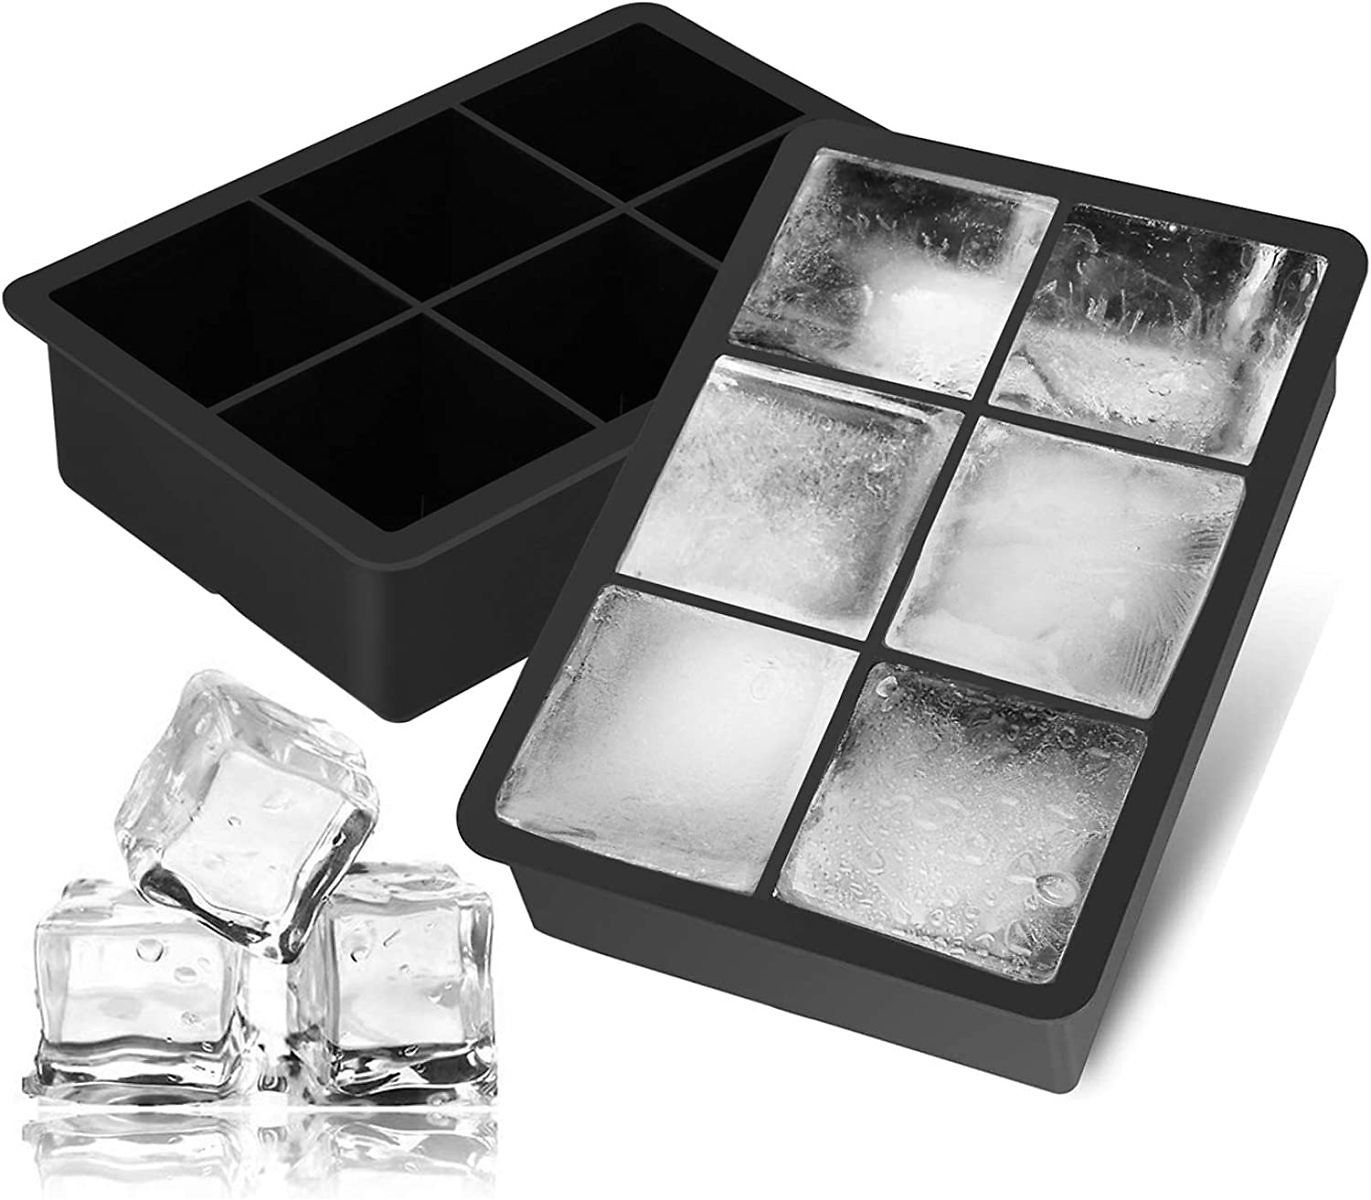 Ice Cube Trays 2 Pack,Silicone Ice Trays with Lid Easy-Release Flexible Large Square Ice Molds 6 Cubes Per Tray